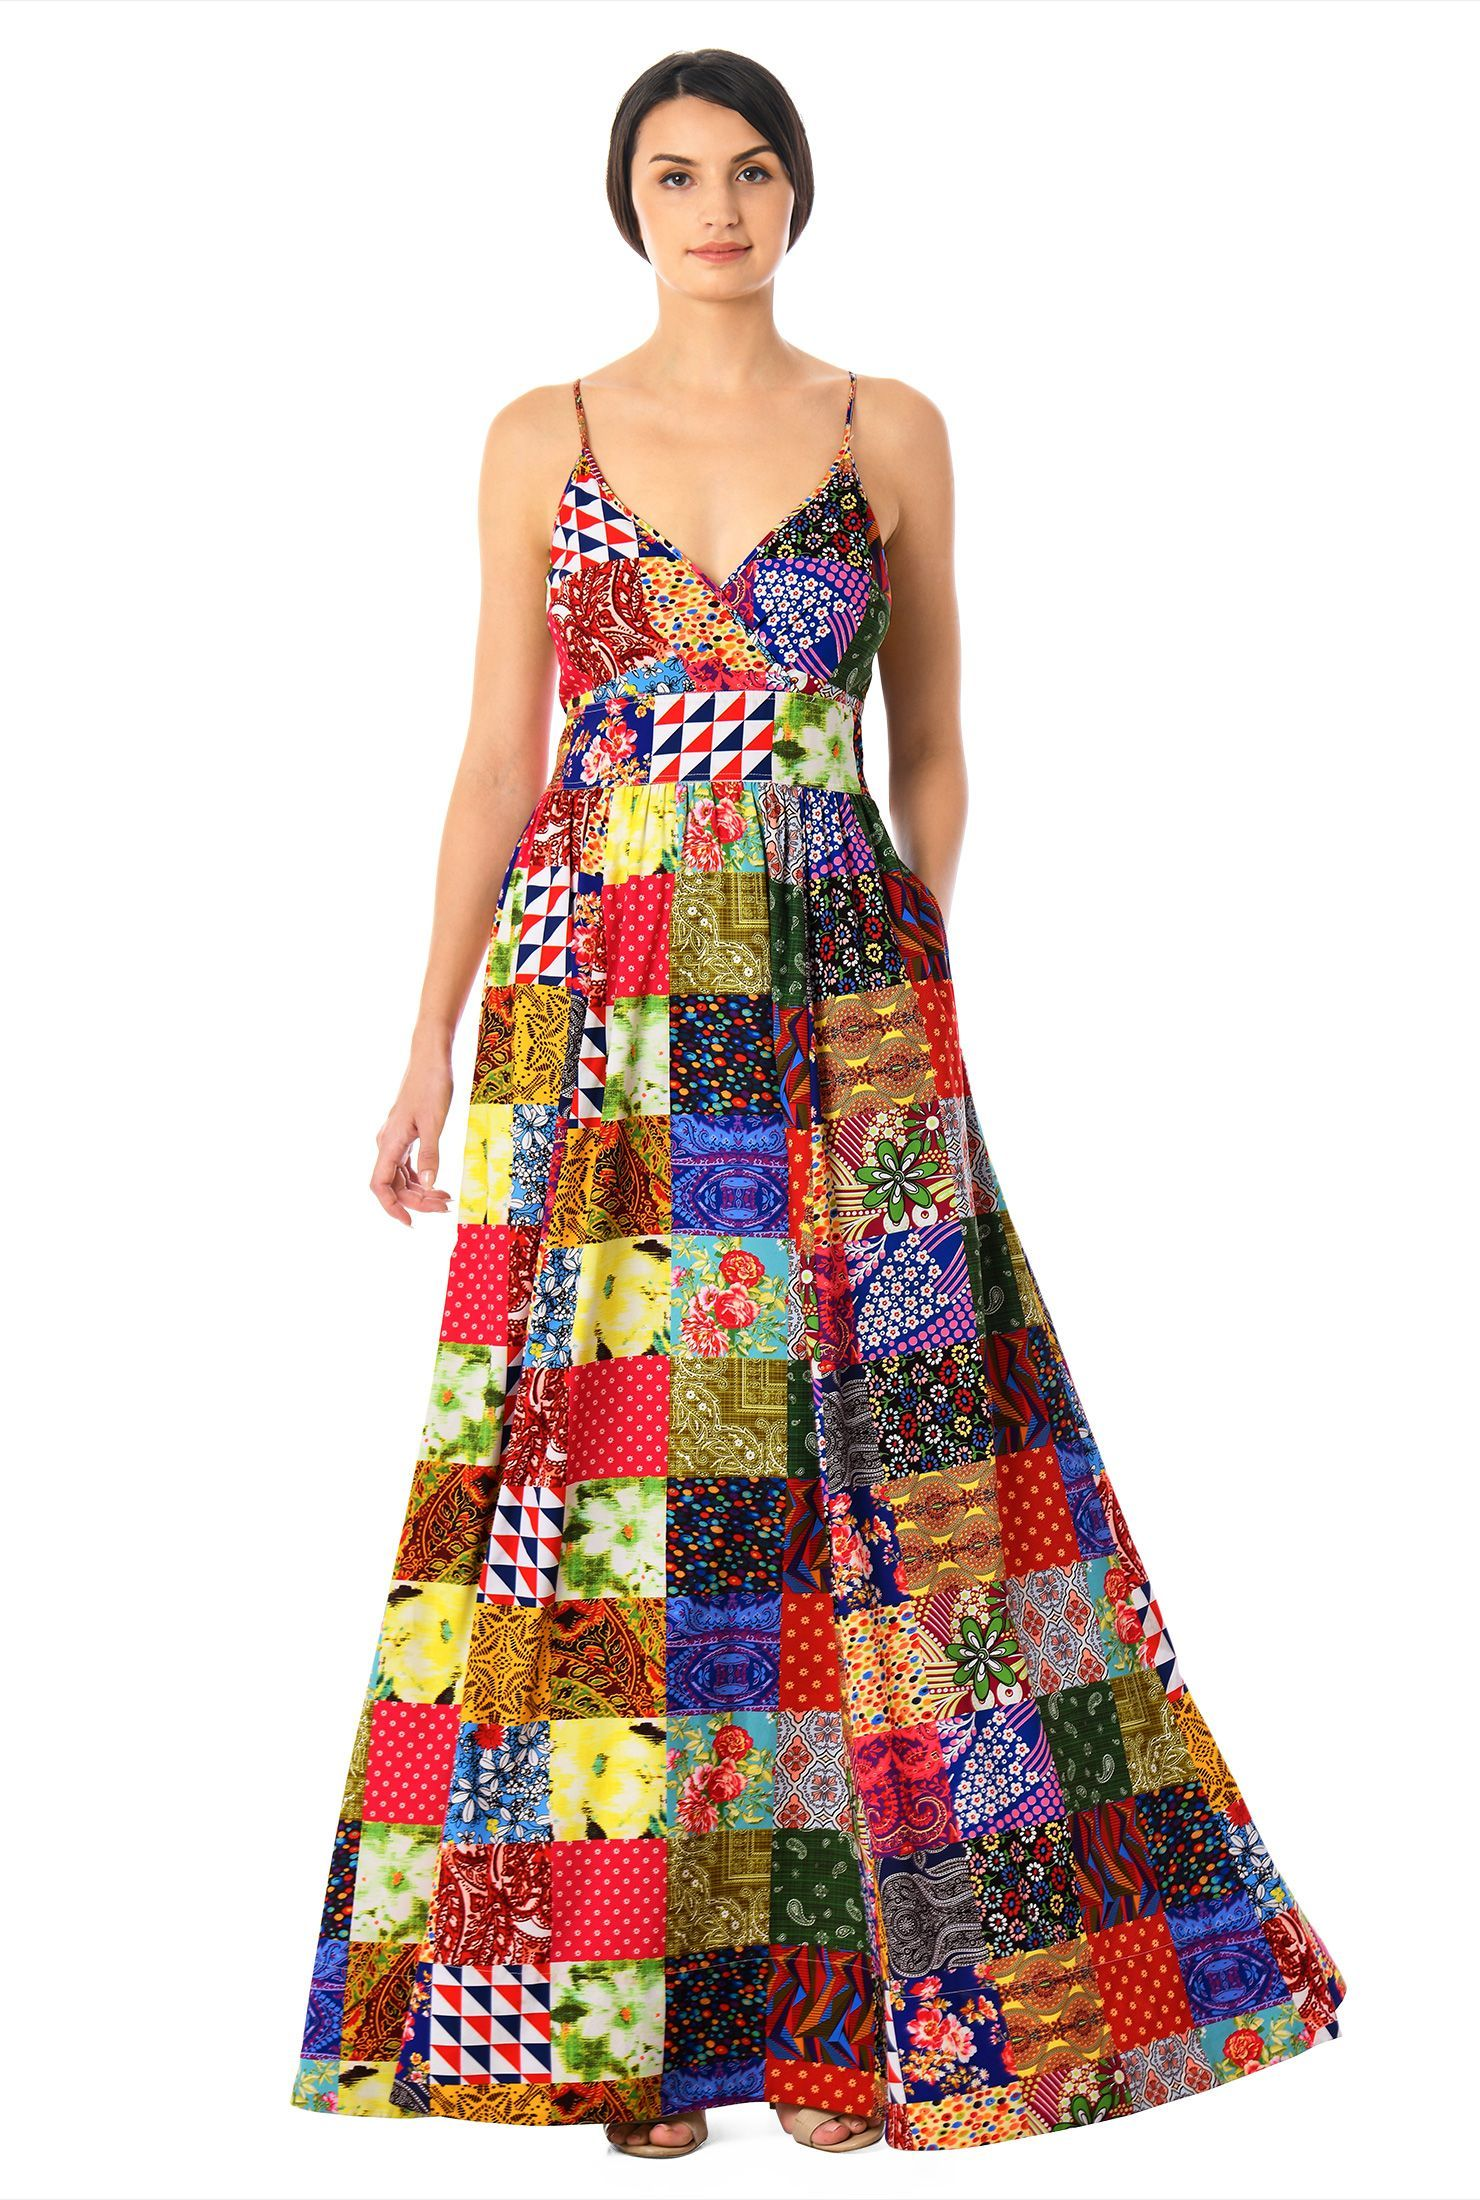 Women Dresses Special Occasion New And Bestselling Party Dresses For Women Occasion Dresses Evening Wear Straple Maxi Dress Womens Dresses Patchwork Dress [ 2200 x 1480 Pixel ]